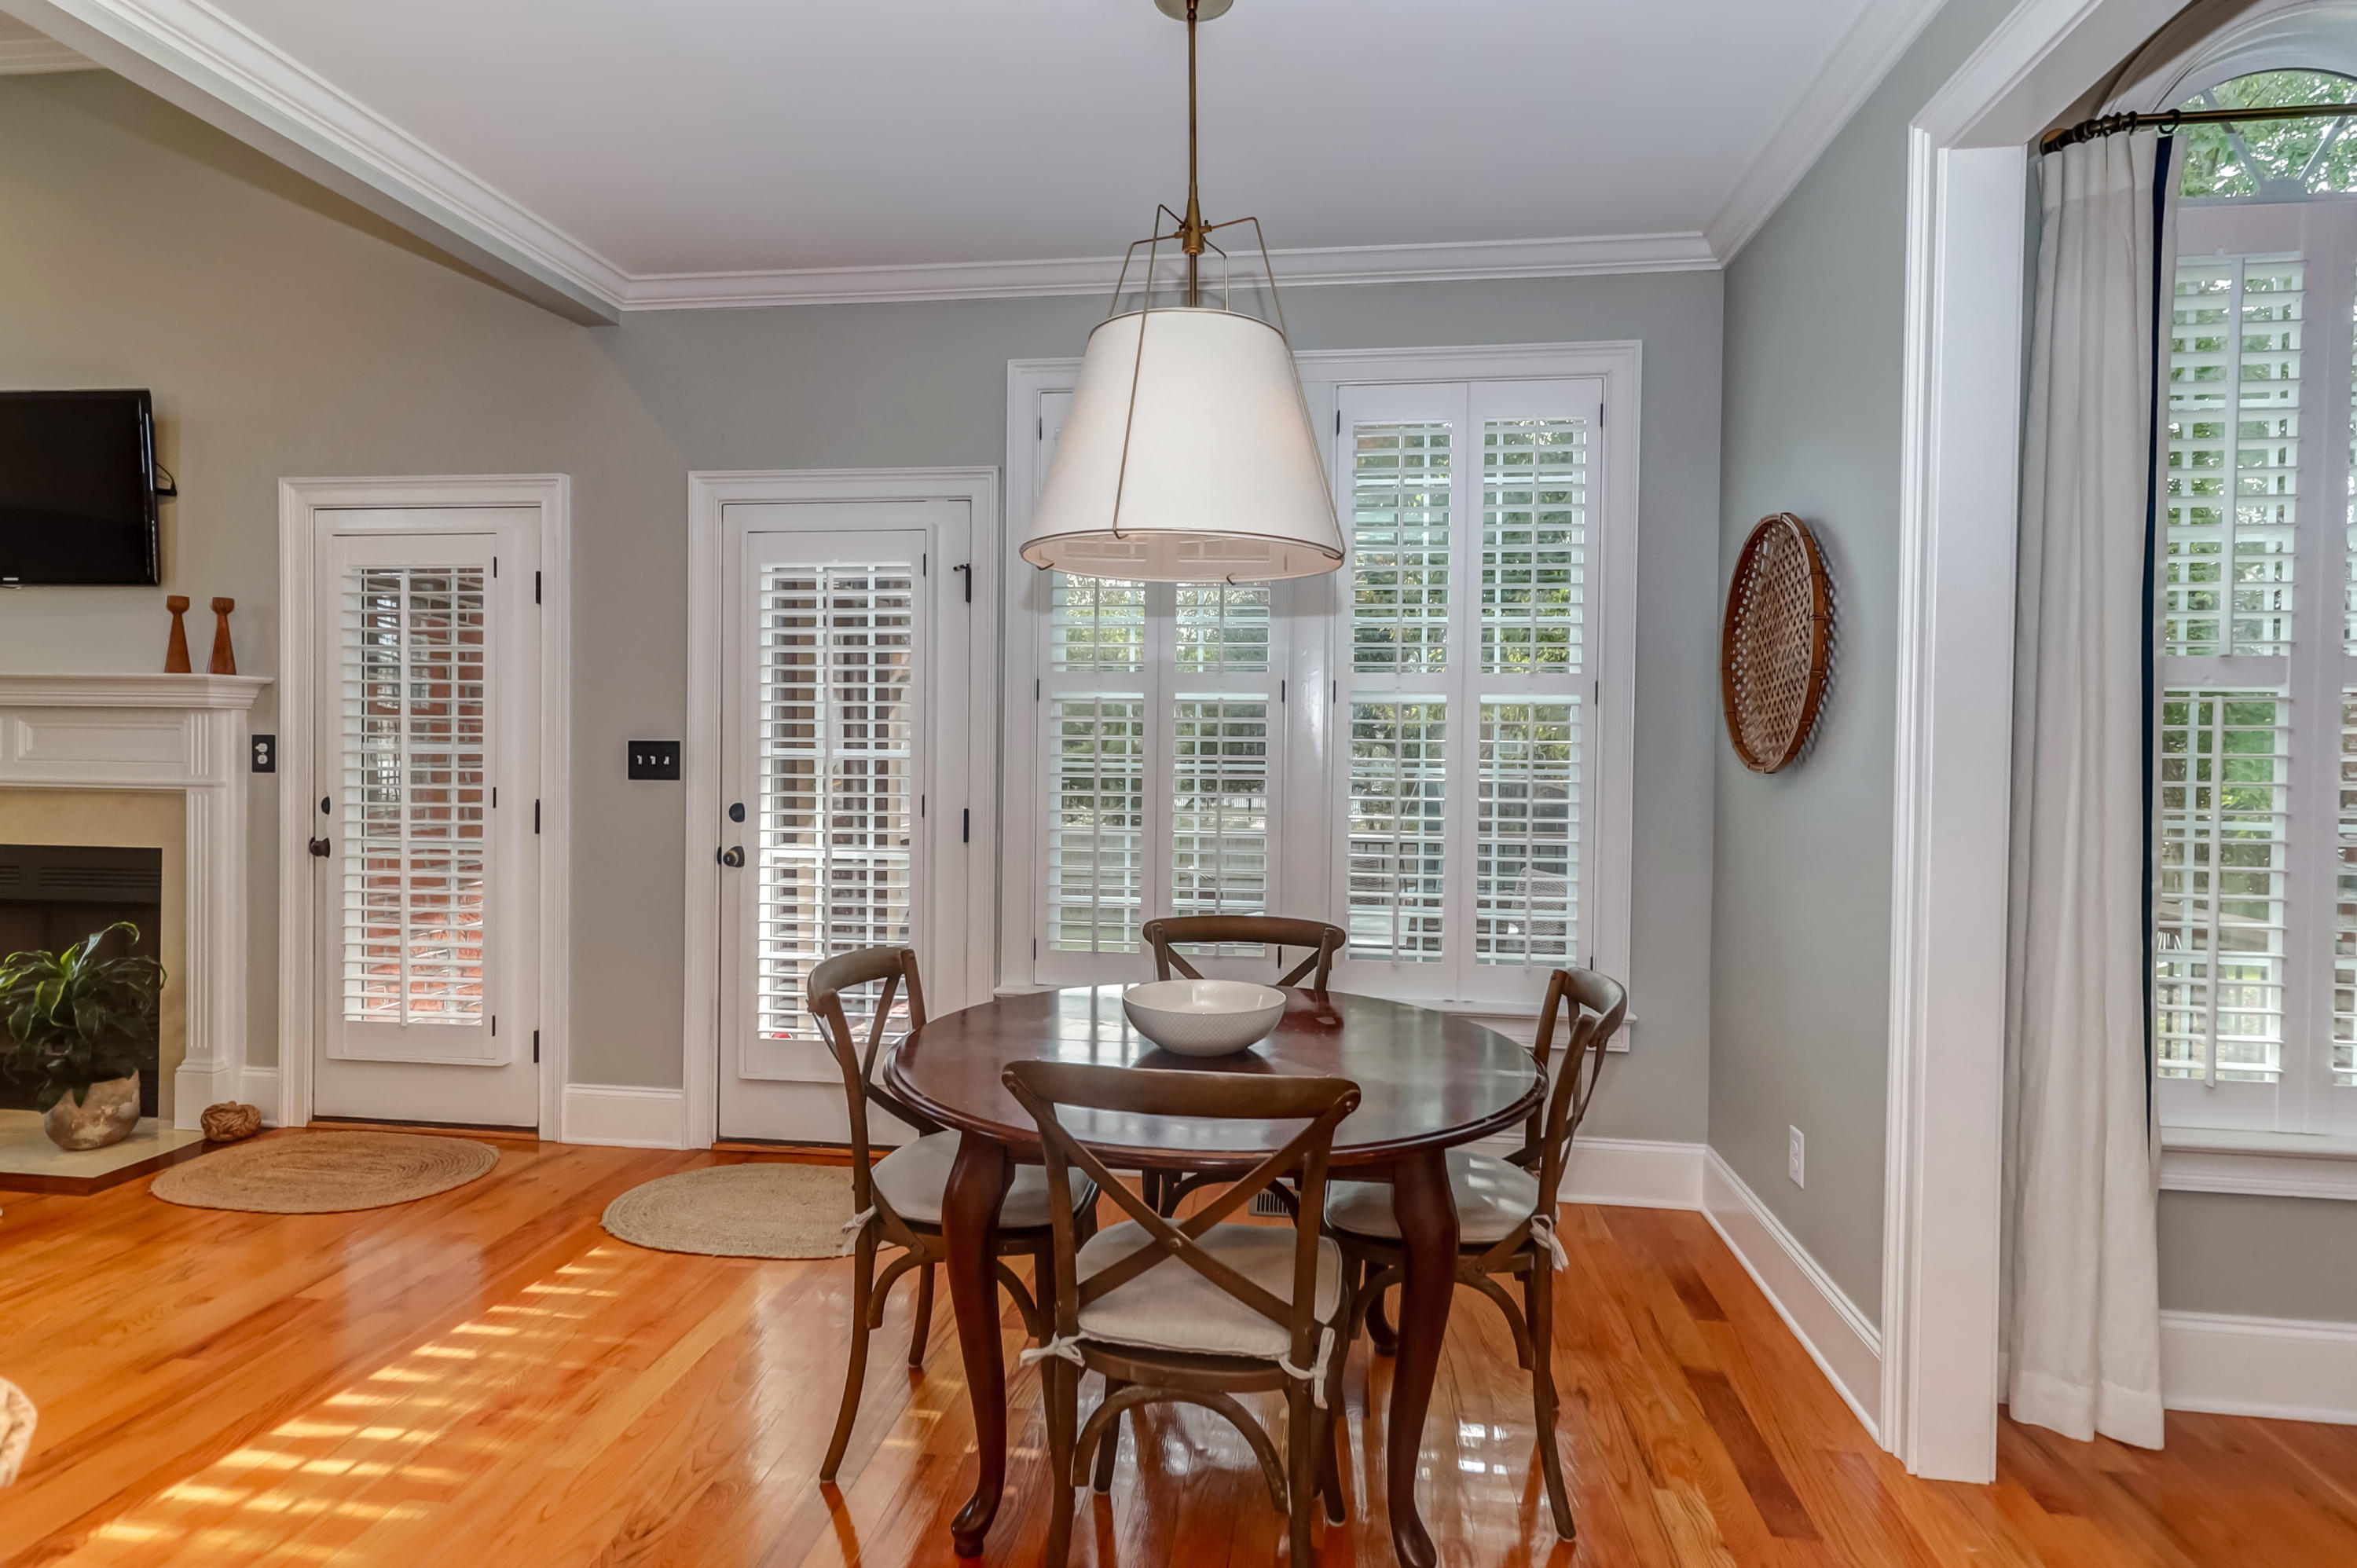 Woodward Pointe Homes For Sale - 657 White Chapel, Charleston, SC - 45